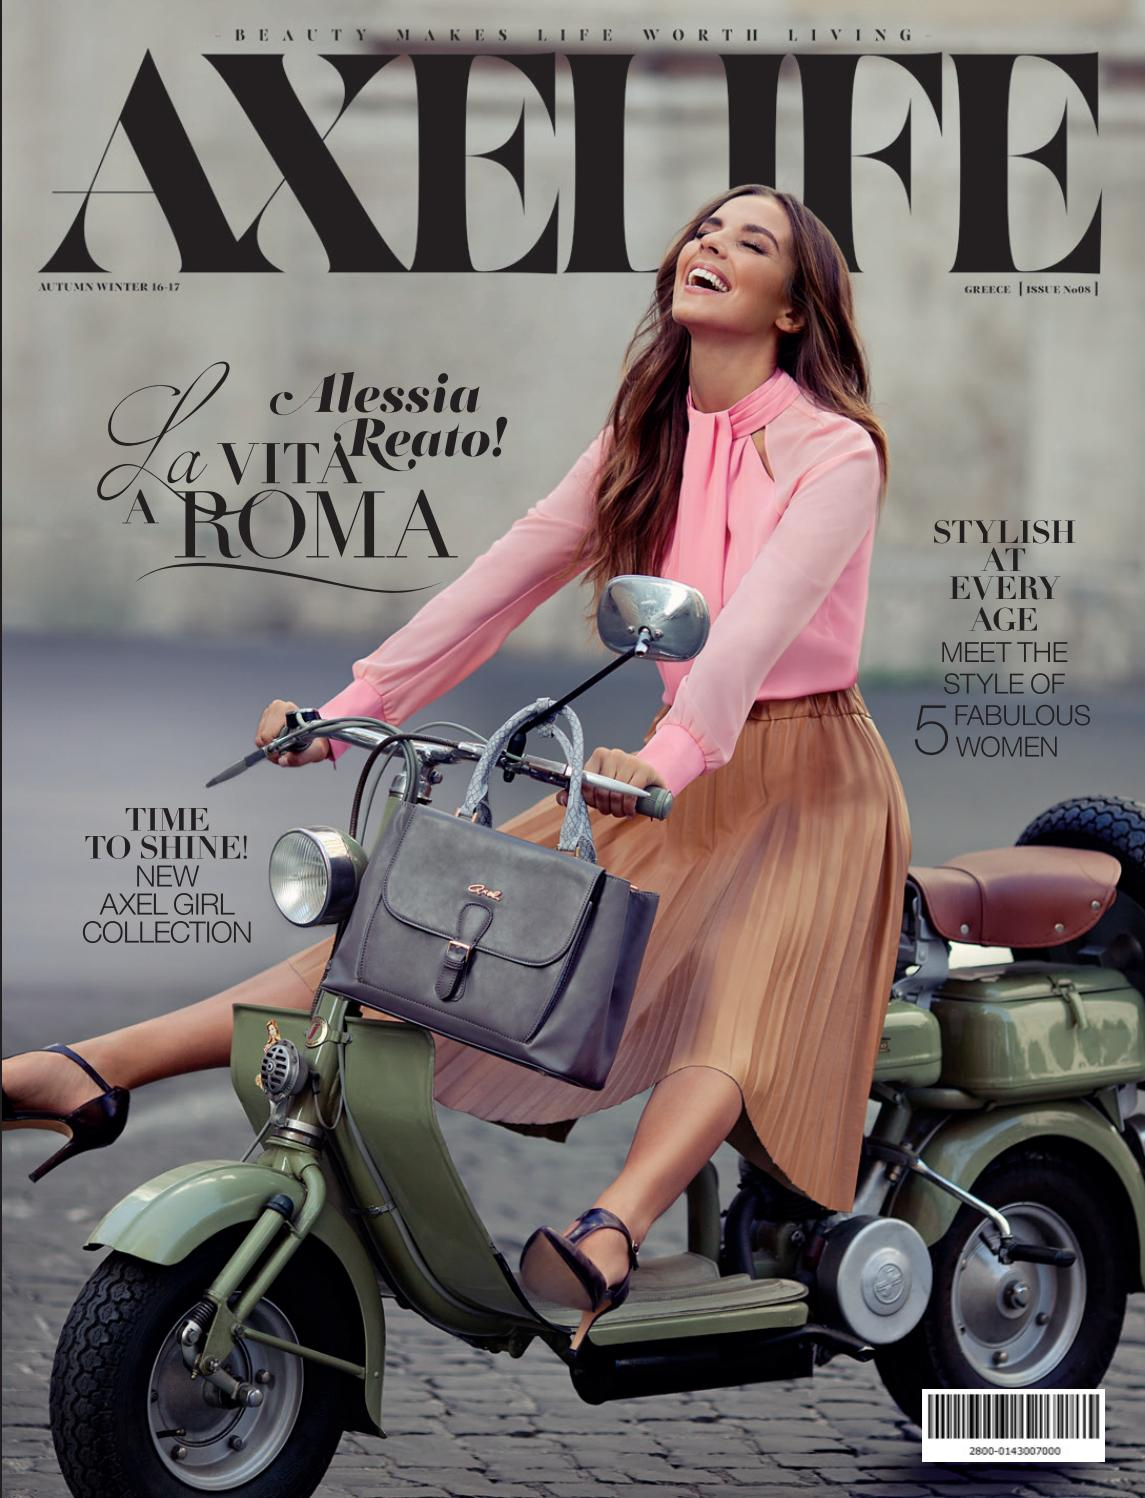 Axelife 8 International by axel accessories - issuu 2ffdbbc7979